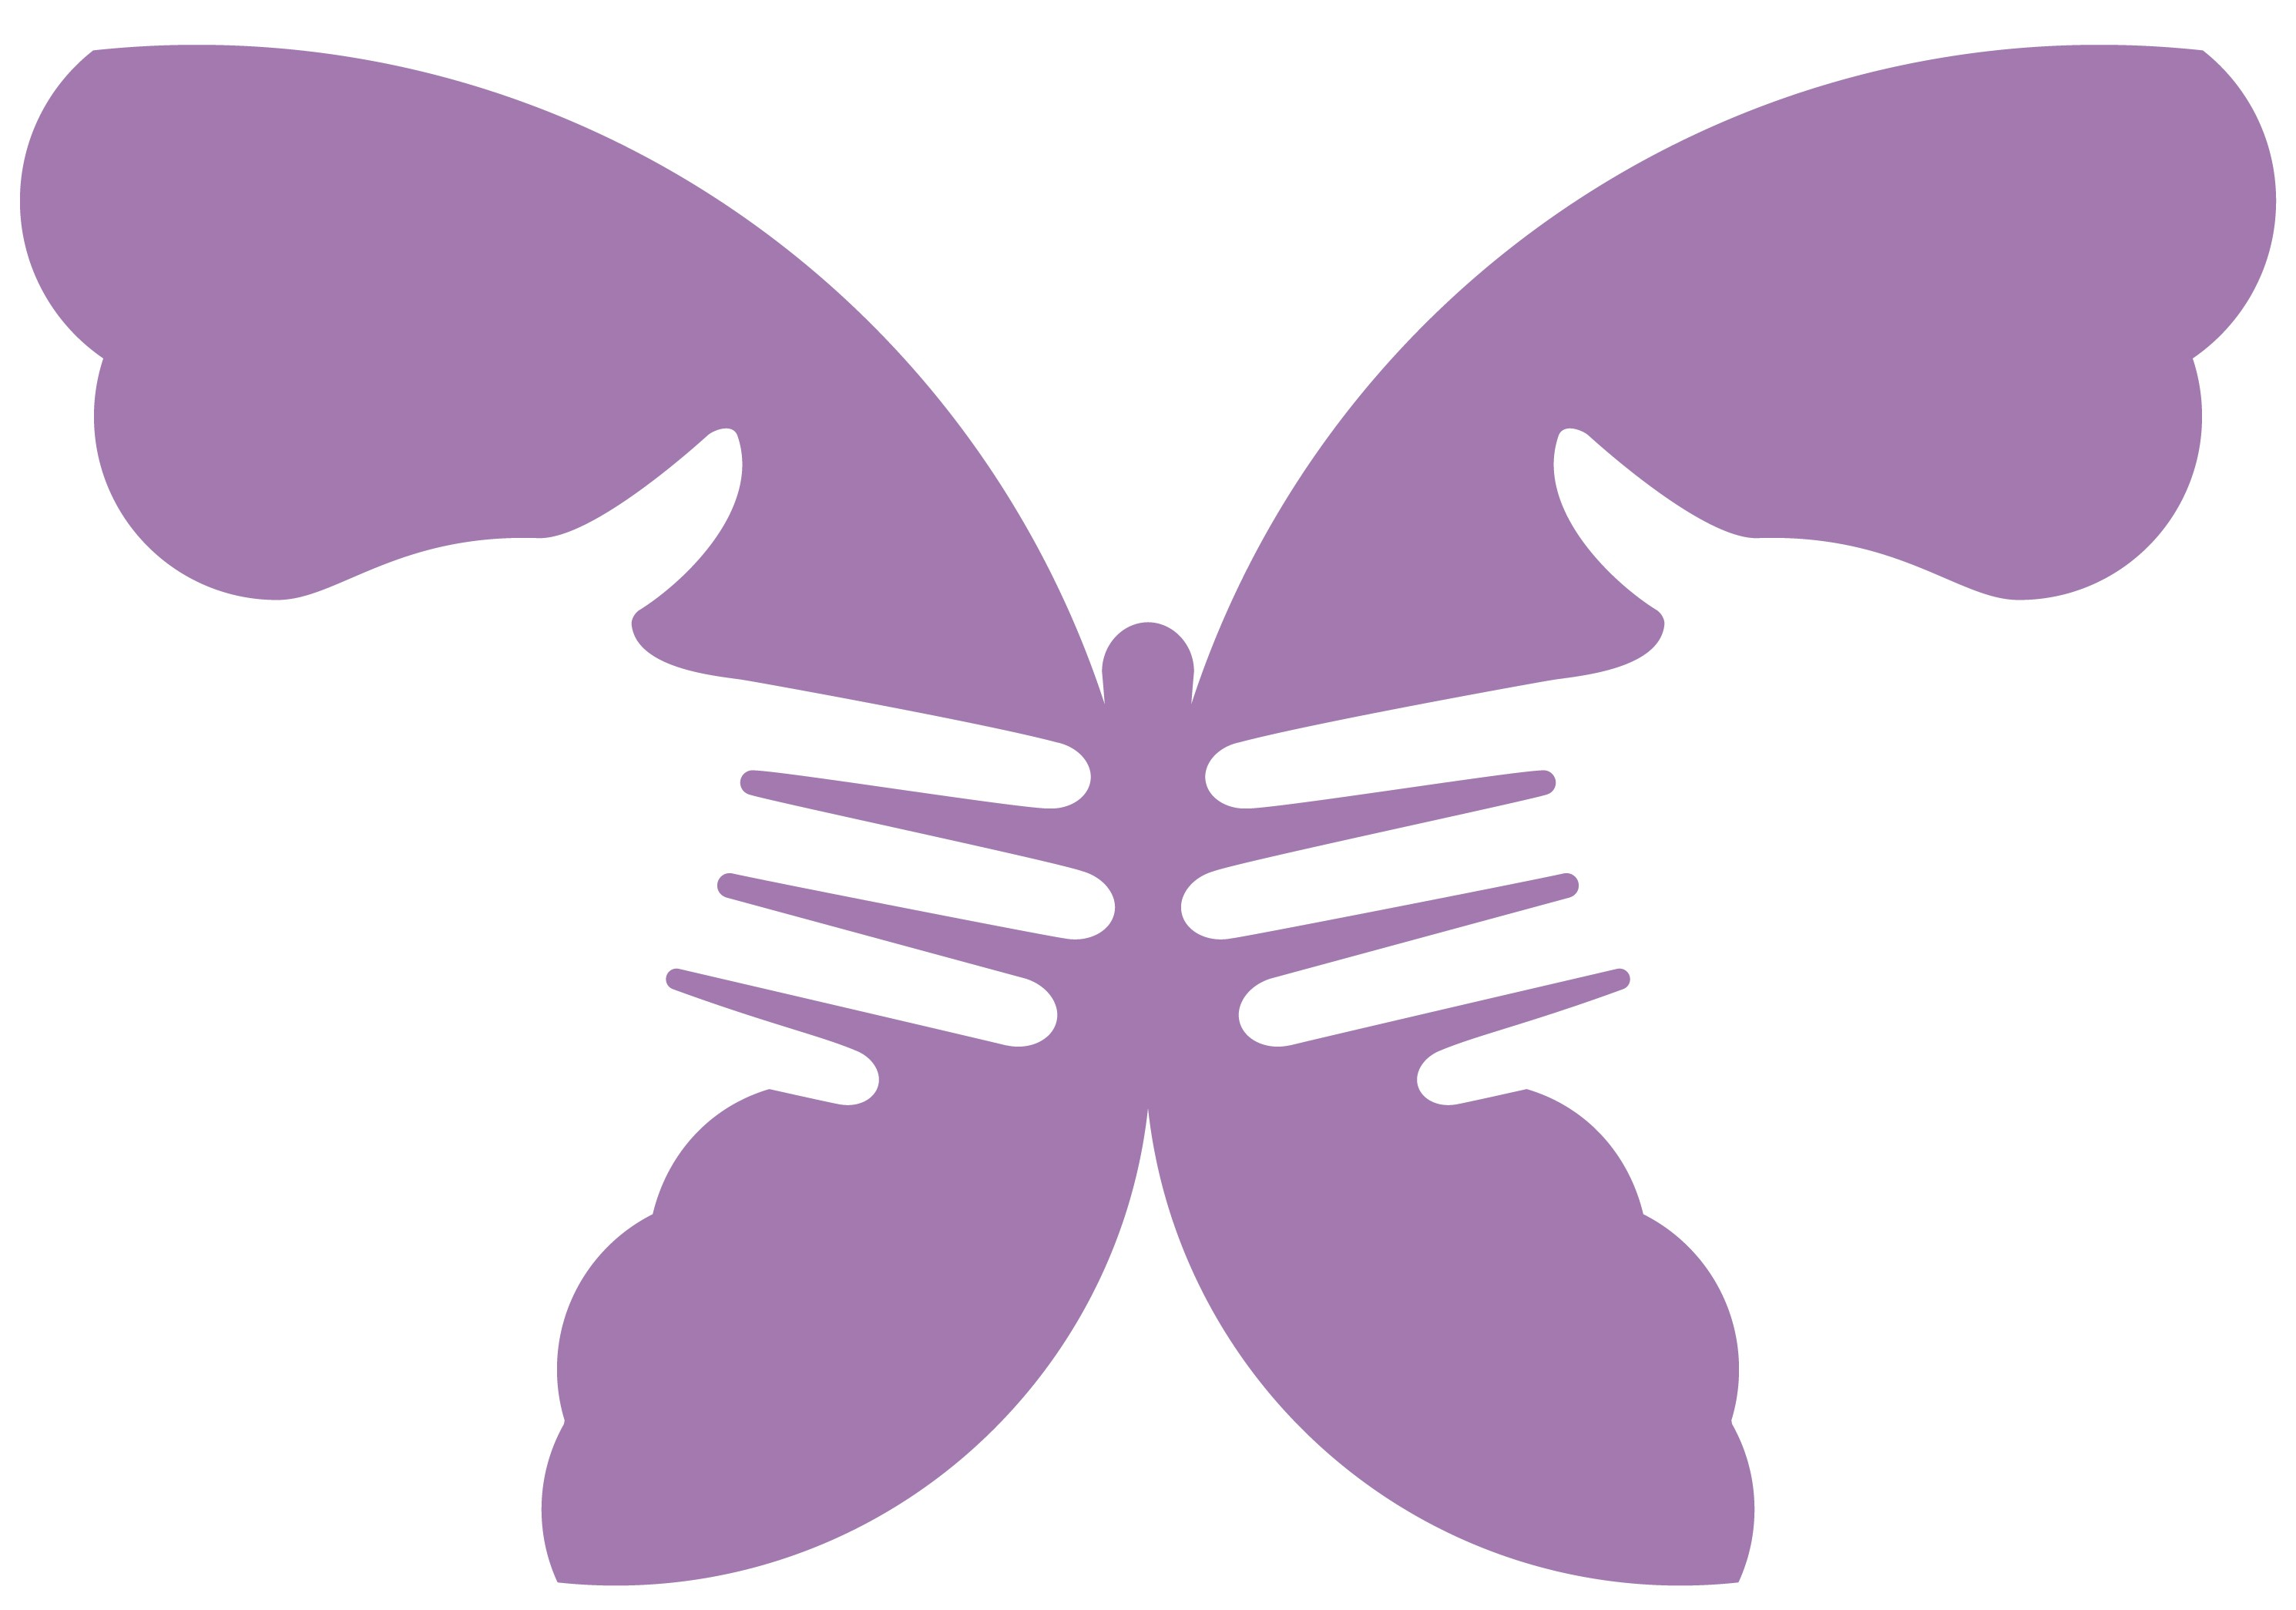 Lupus Butterfly Symbol Best Image Of Butterfly Imagevet